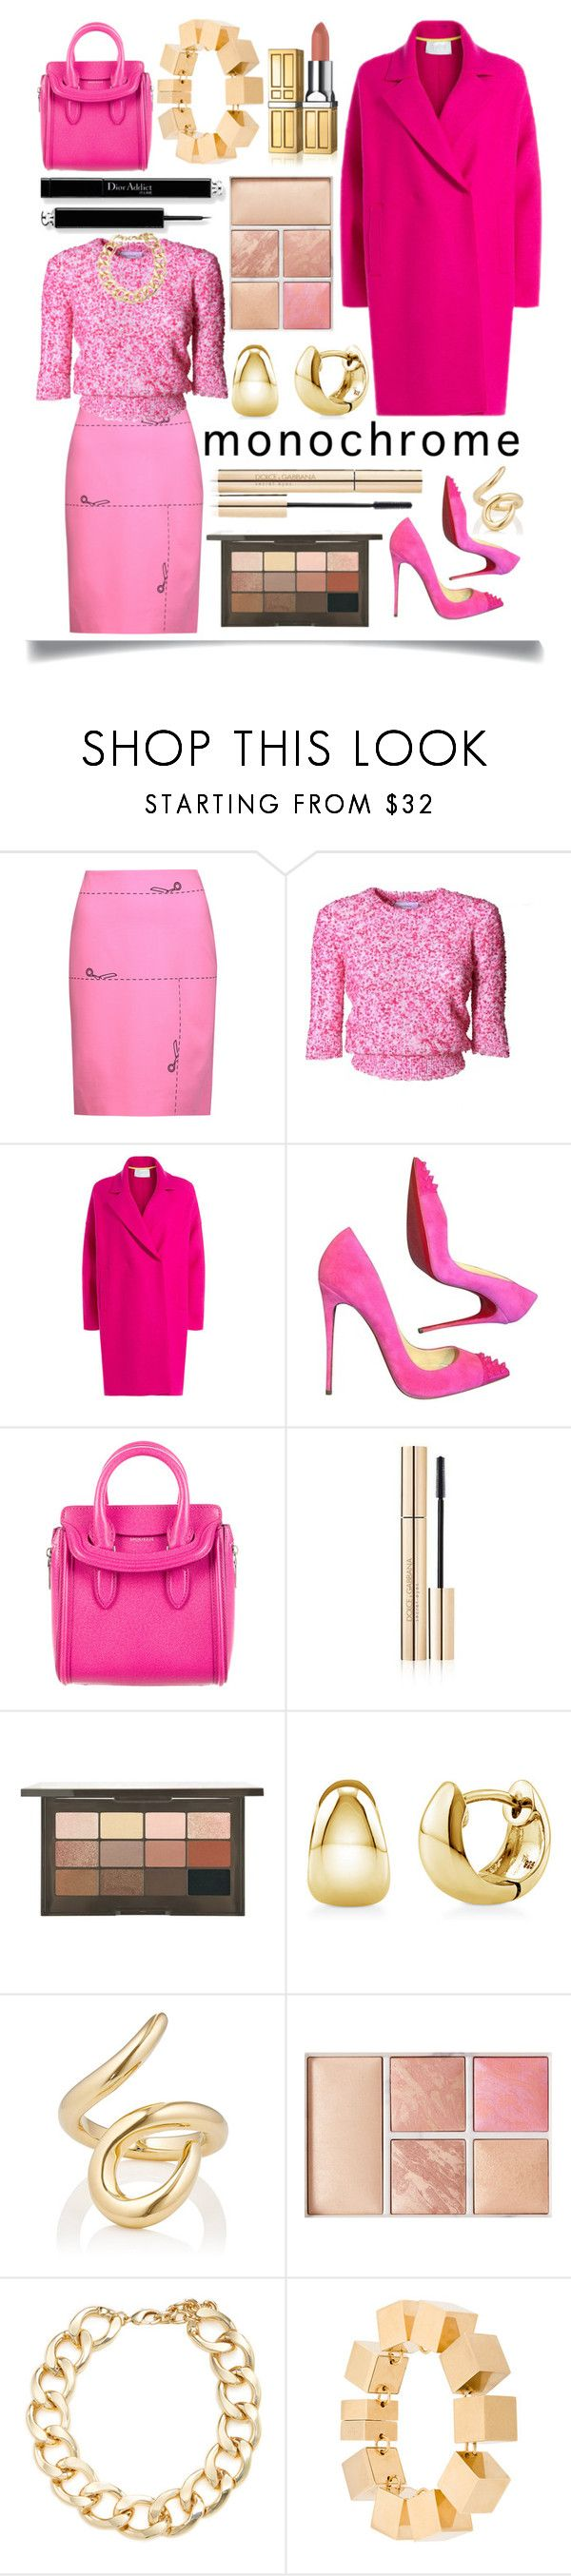 """Monochrome"" by ittie-kittie ❤ liked on Polyvore featuring Moschino, Carven, Harris Wharf London, Christian Louboutin, Alexander McQueen, Dolce&Gabbana, BERRICLE, Jennifer Fisher, Hourglass Cosmetics and Kenneth Jay Lane"